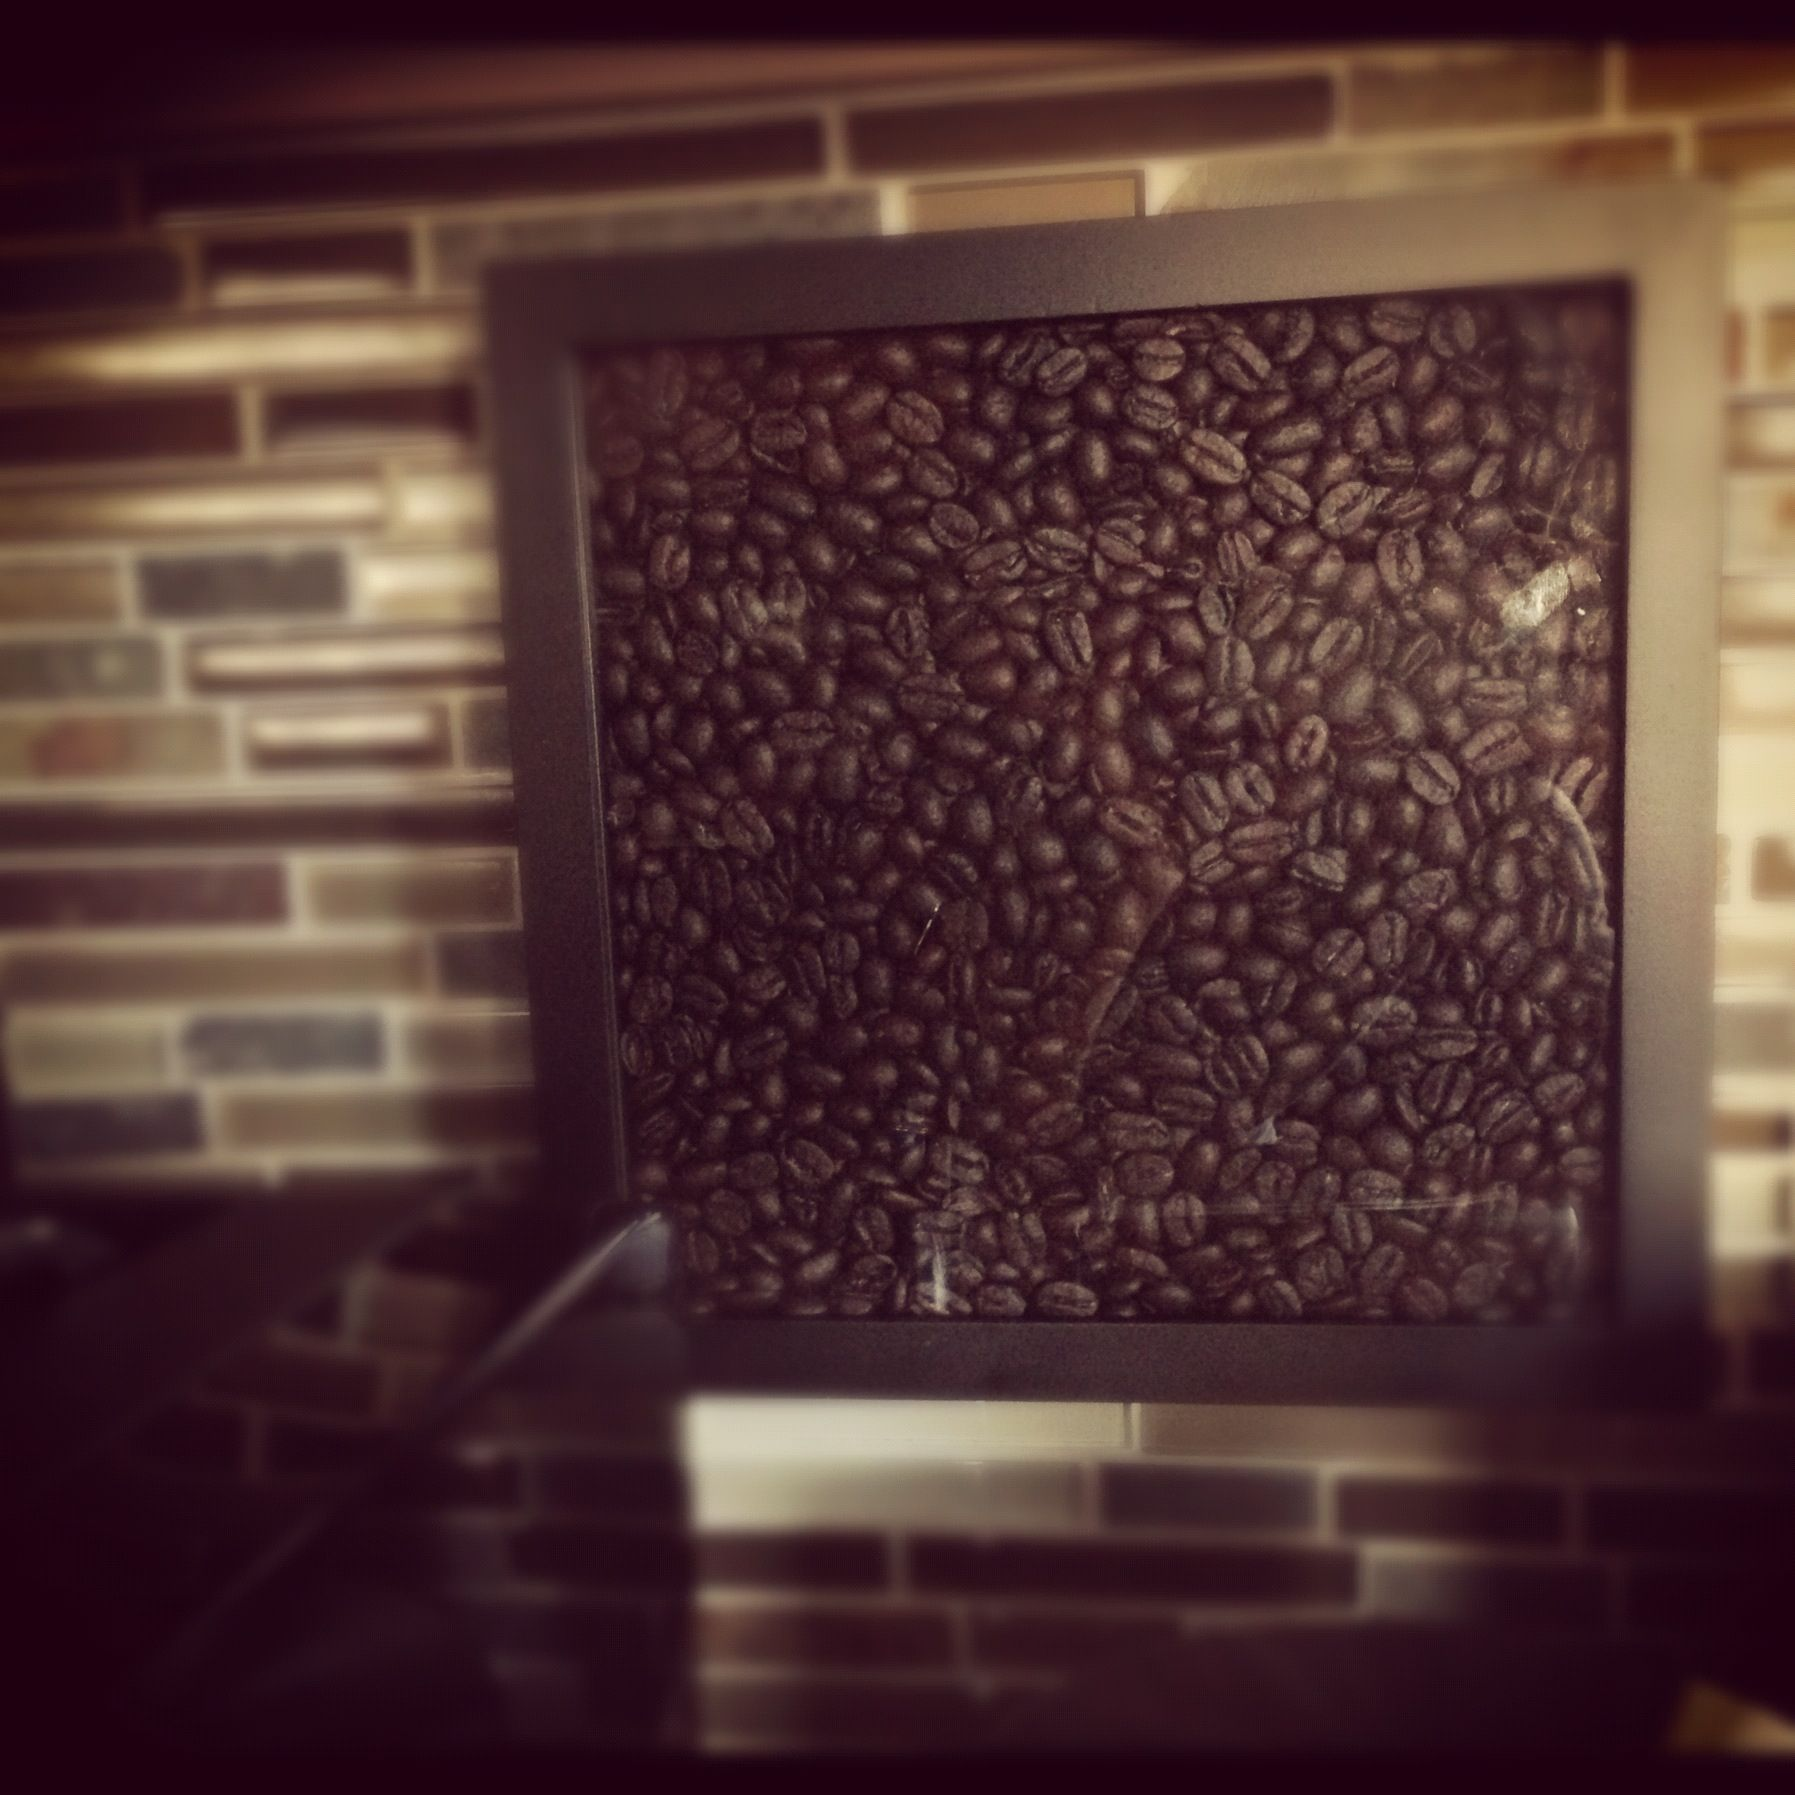 Coffee Themed Decorating Ideas Part - 43: Coffee Theme Decor... Shadow Box Frame And Coffee Beans, Iu0027d